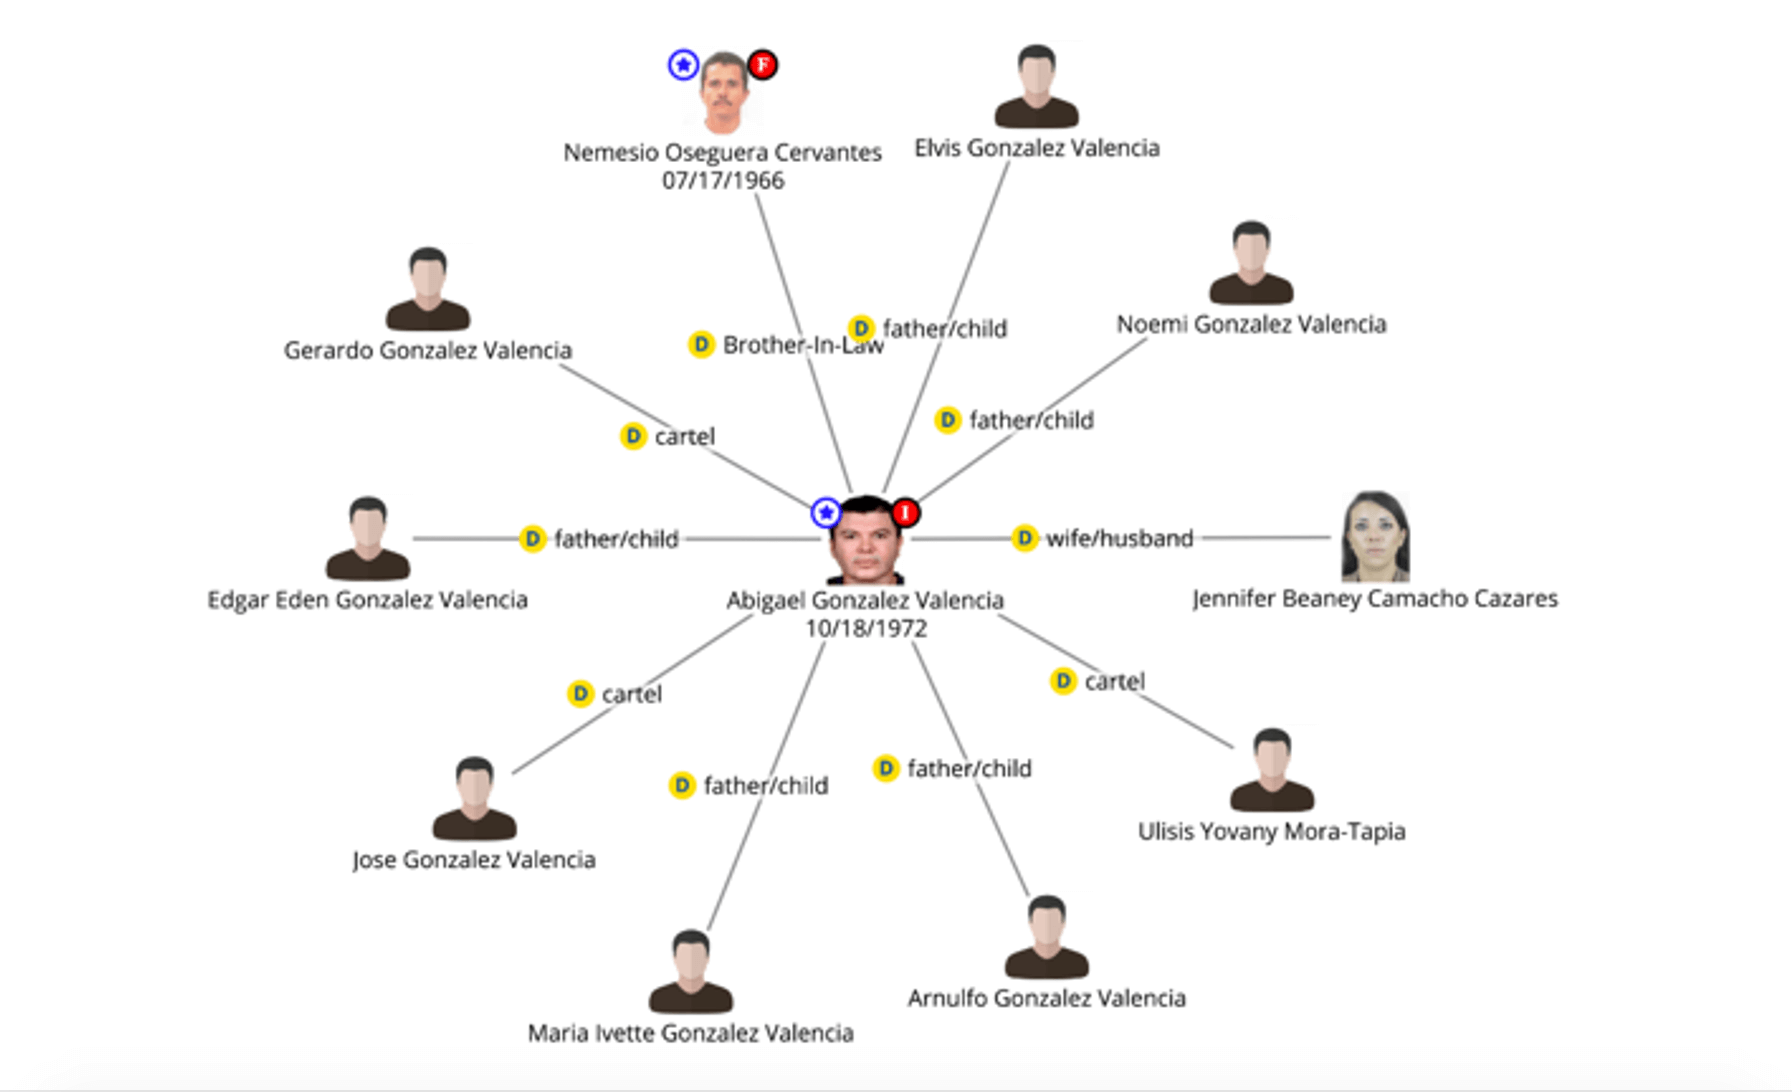 Figure 5. DataWalk link analysis showing connections of an entity.